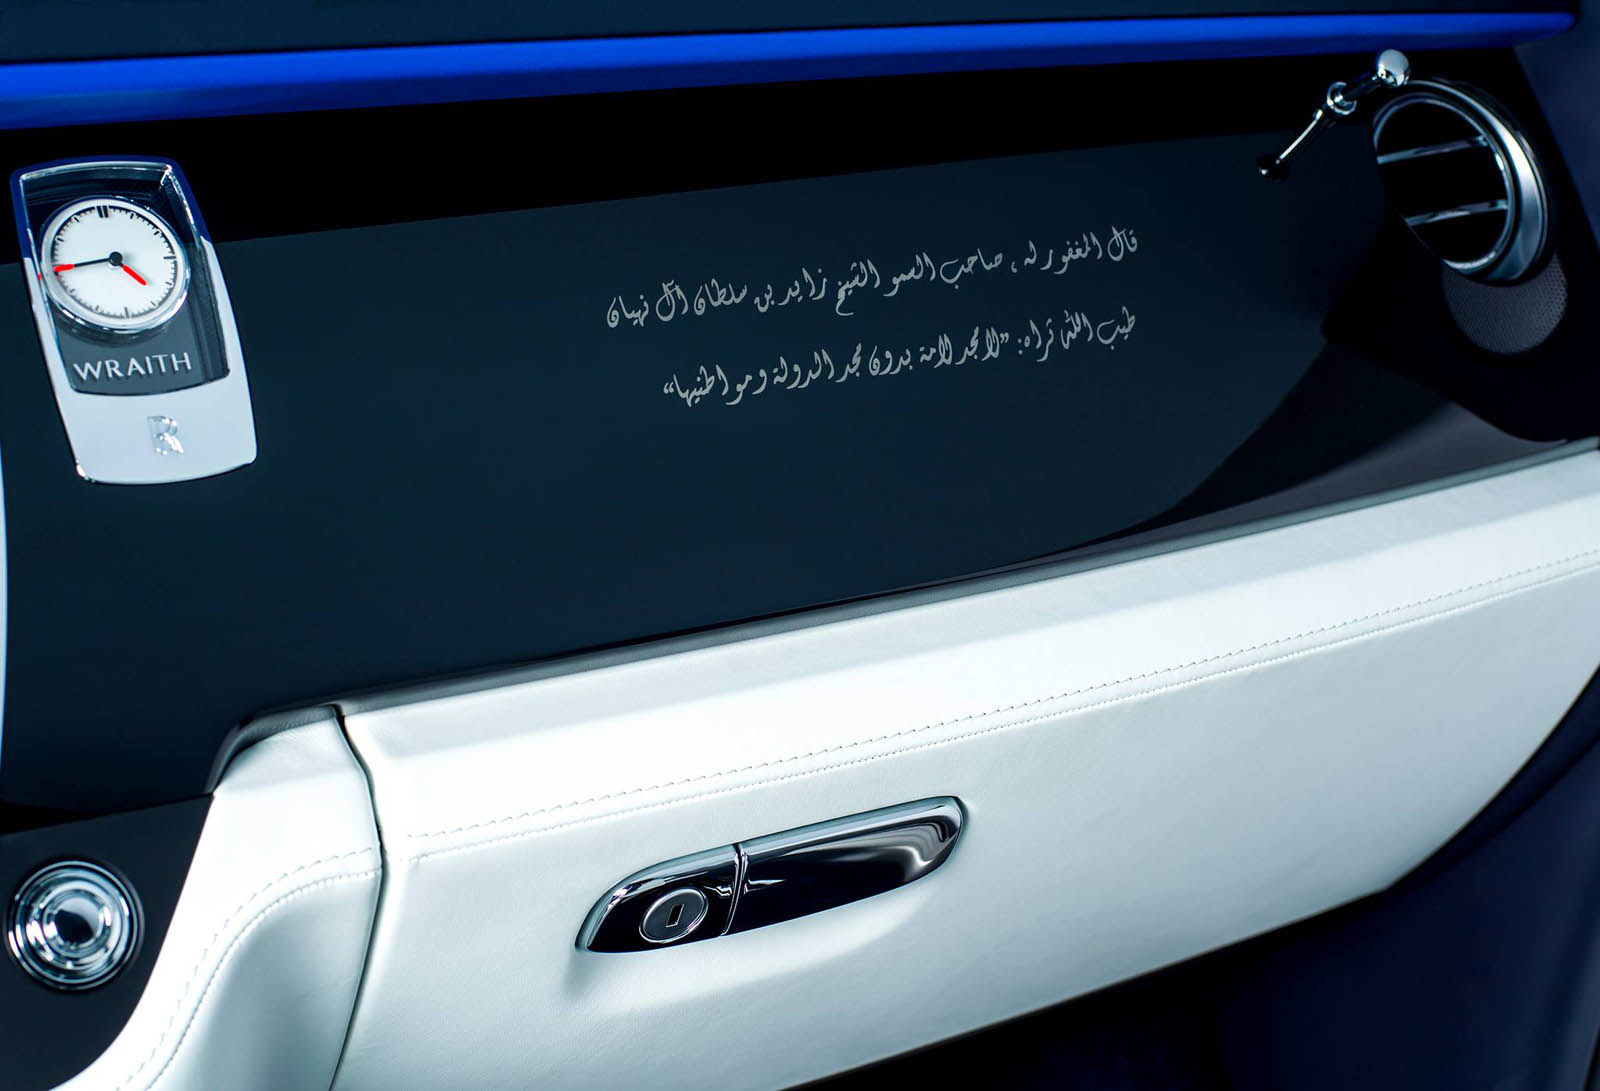 rolls-royce-Wraith-inspired-by-Sheikh-Zayed-Bridge-10